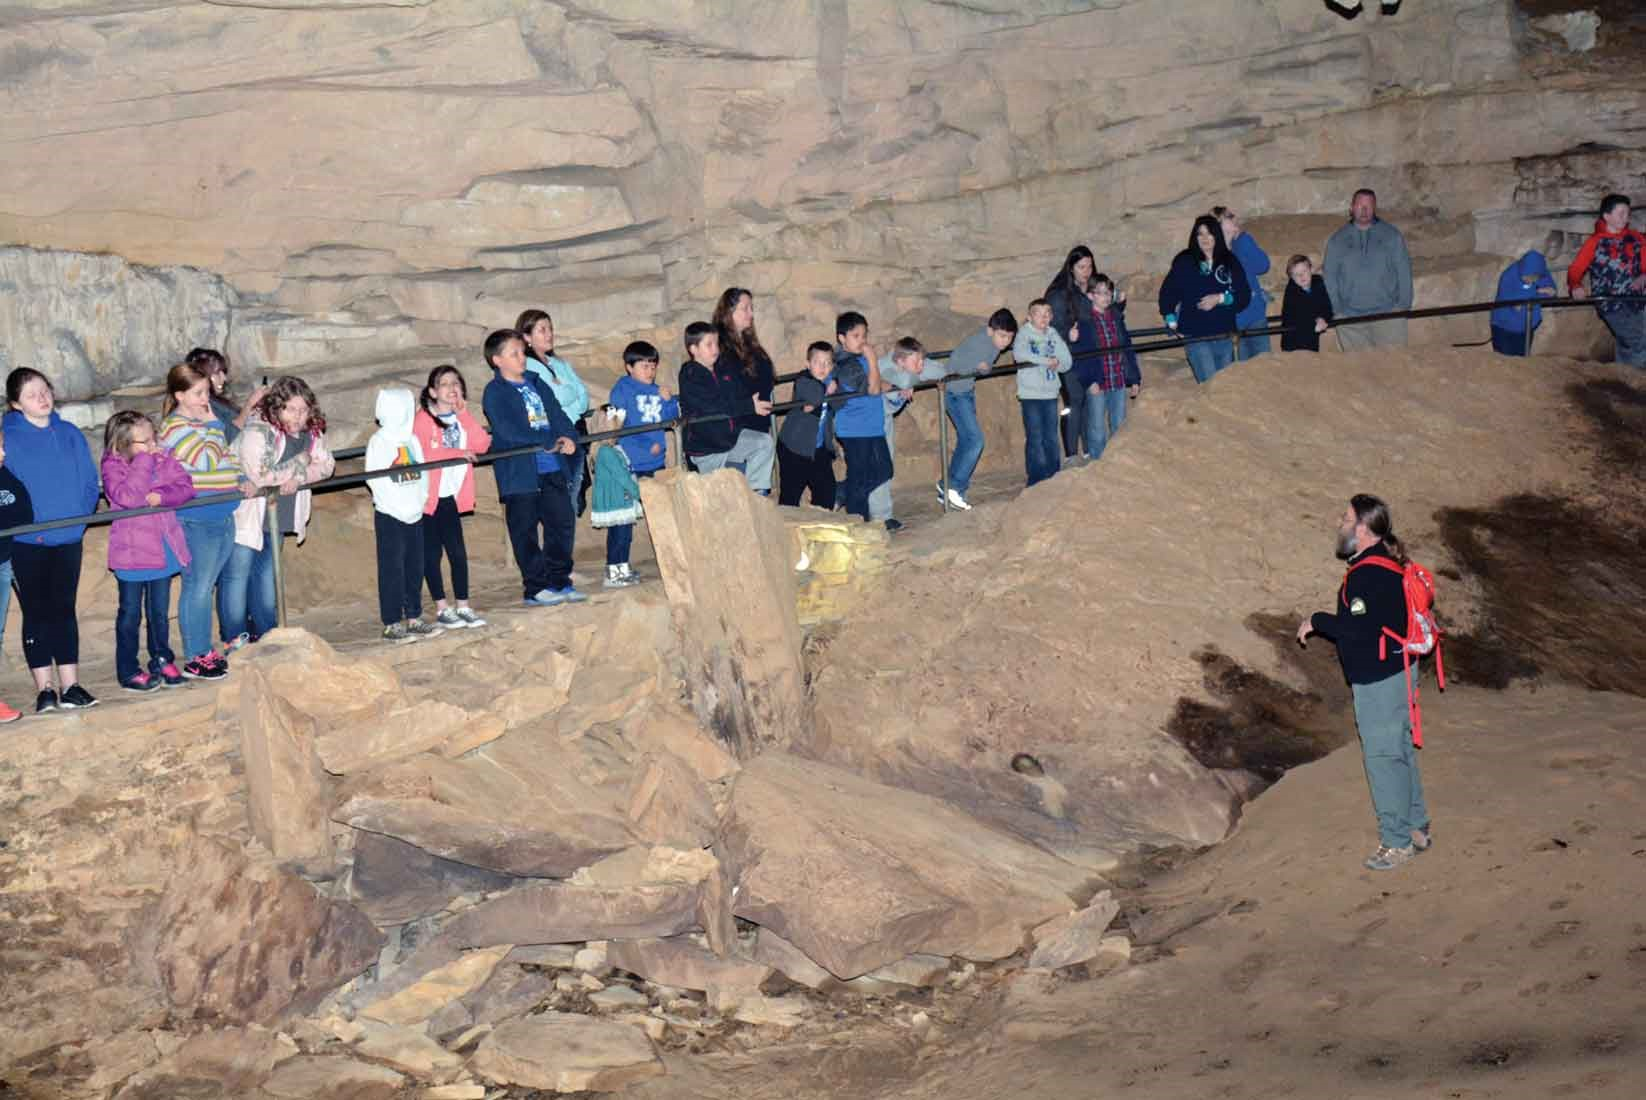 Park Adventure Ranger Coy Ainsley shows his tour group around Cascade Cave's Lake Room after a short walk from a cavern known as the Dance Hall, where a private owner of the caves used to stage weekly dances. Ainsley says the park may average 3,000–4,000 students on field trips each year.